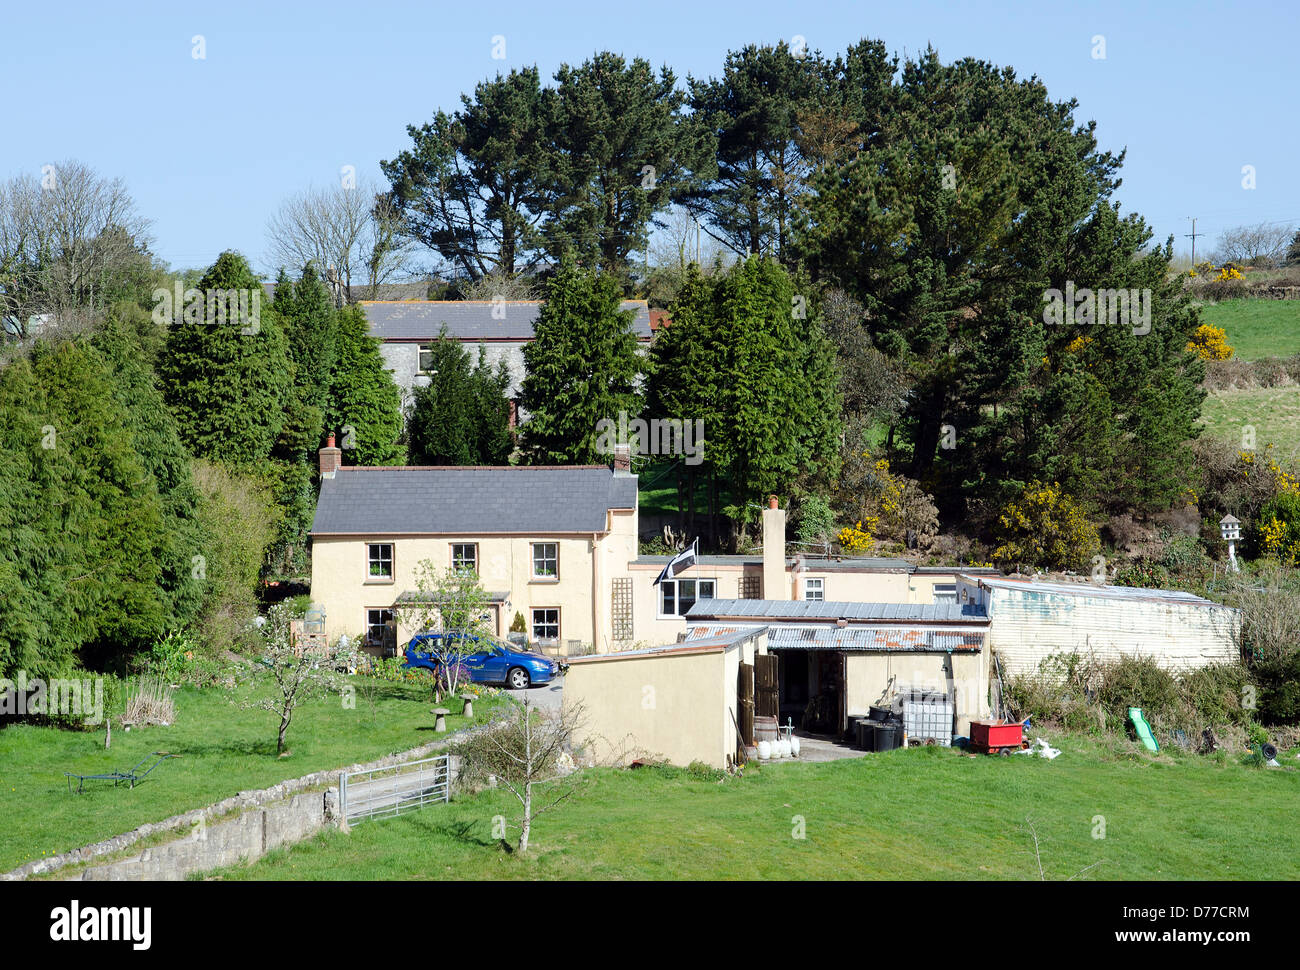 Un chalet dans un emplacement rural près de Truro, Cornwall, UK Photo Stock